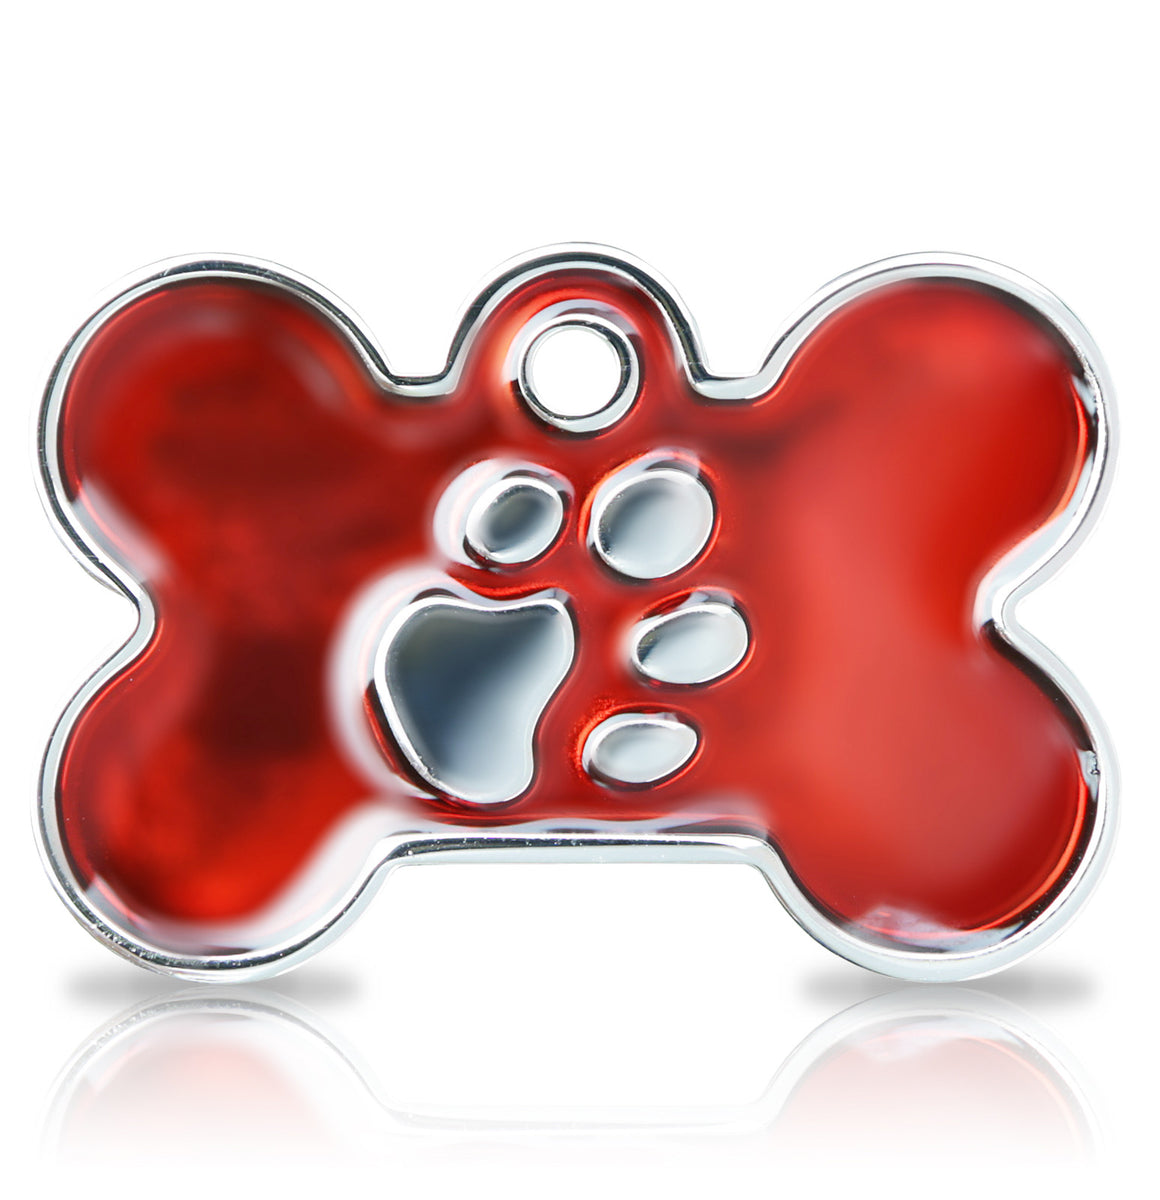 TaggIT Elegance Large Bone Red & Silver Dog Tag iMarc Tag